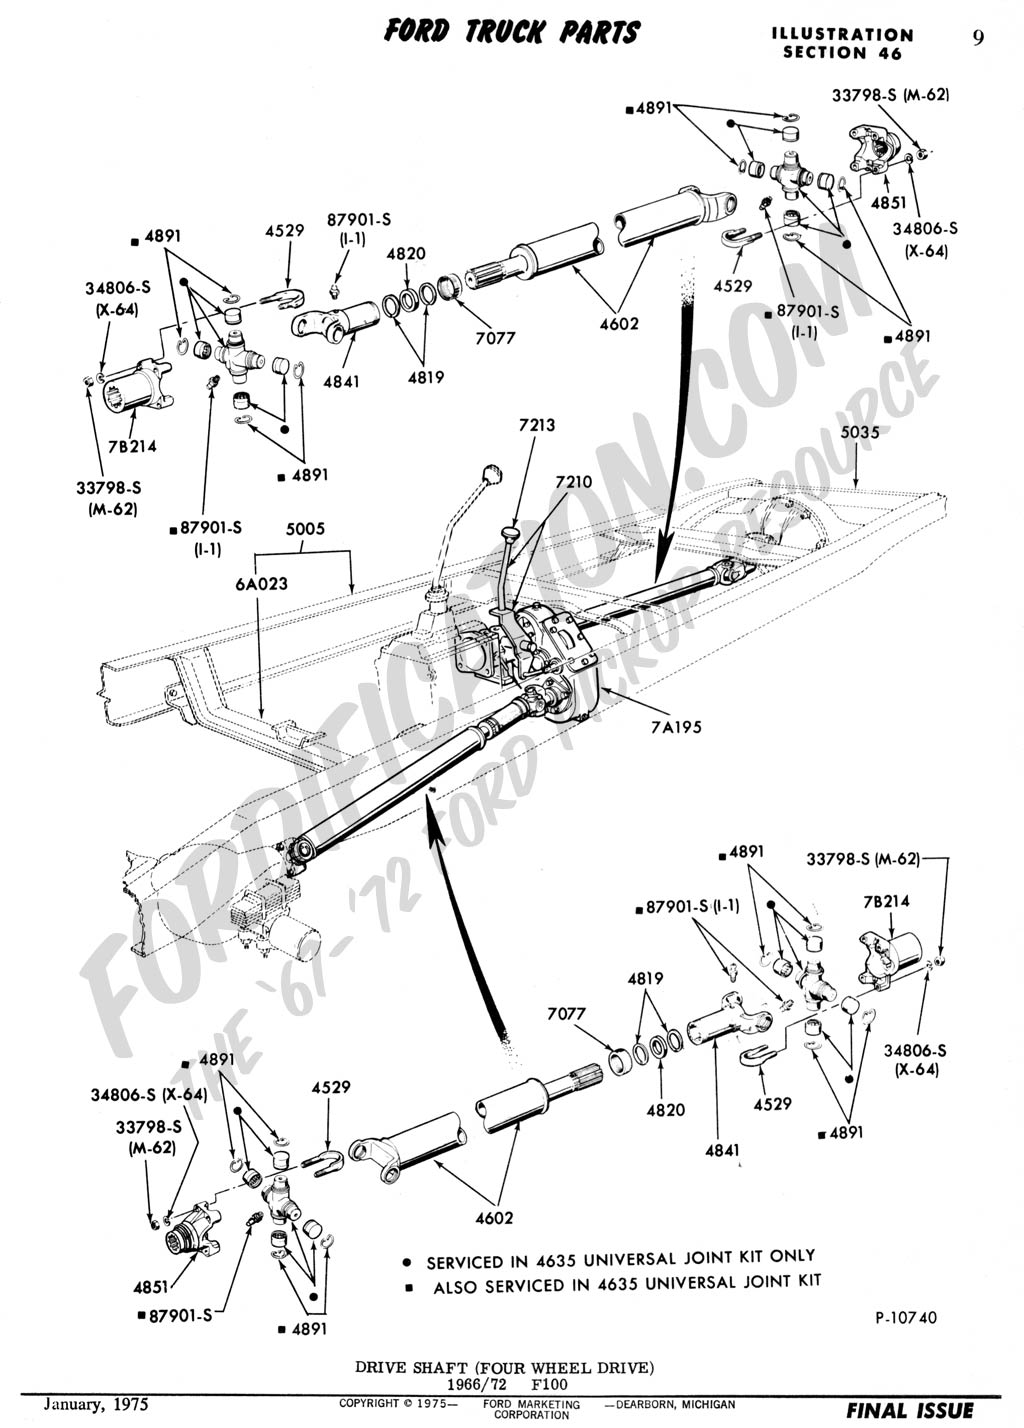 F350 2000 Axle Parts Front